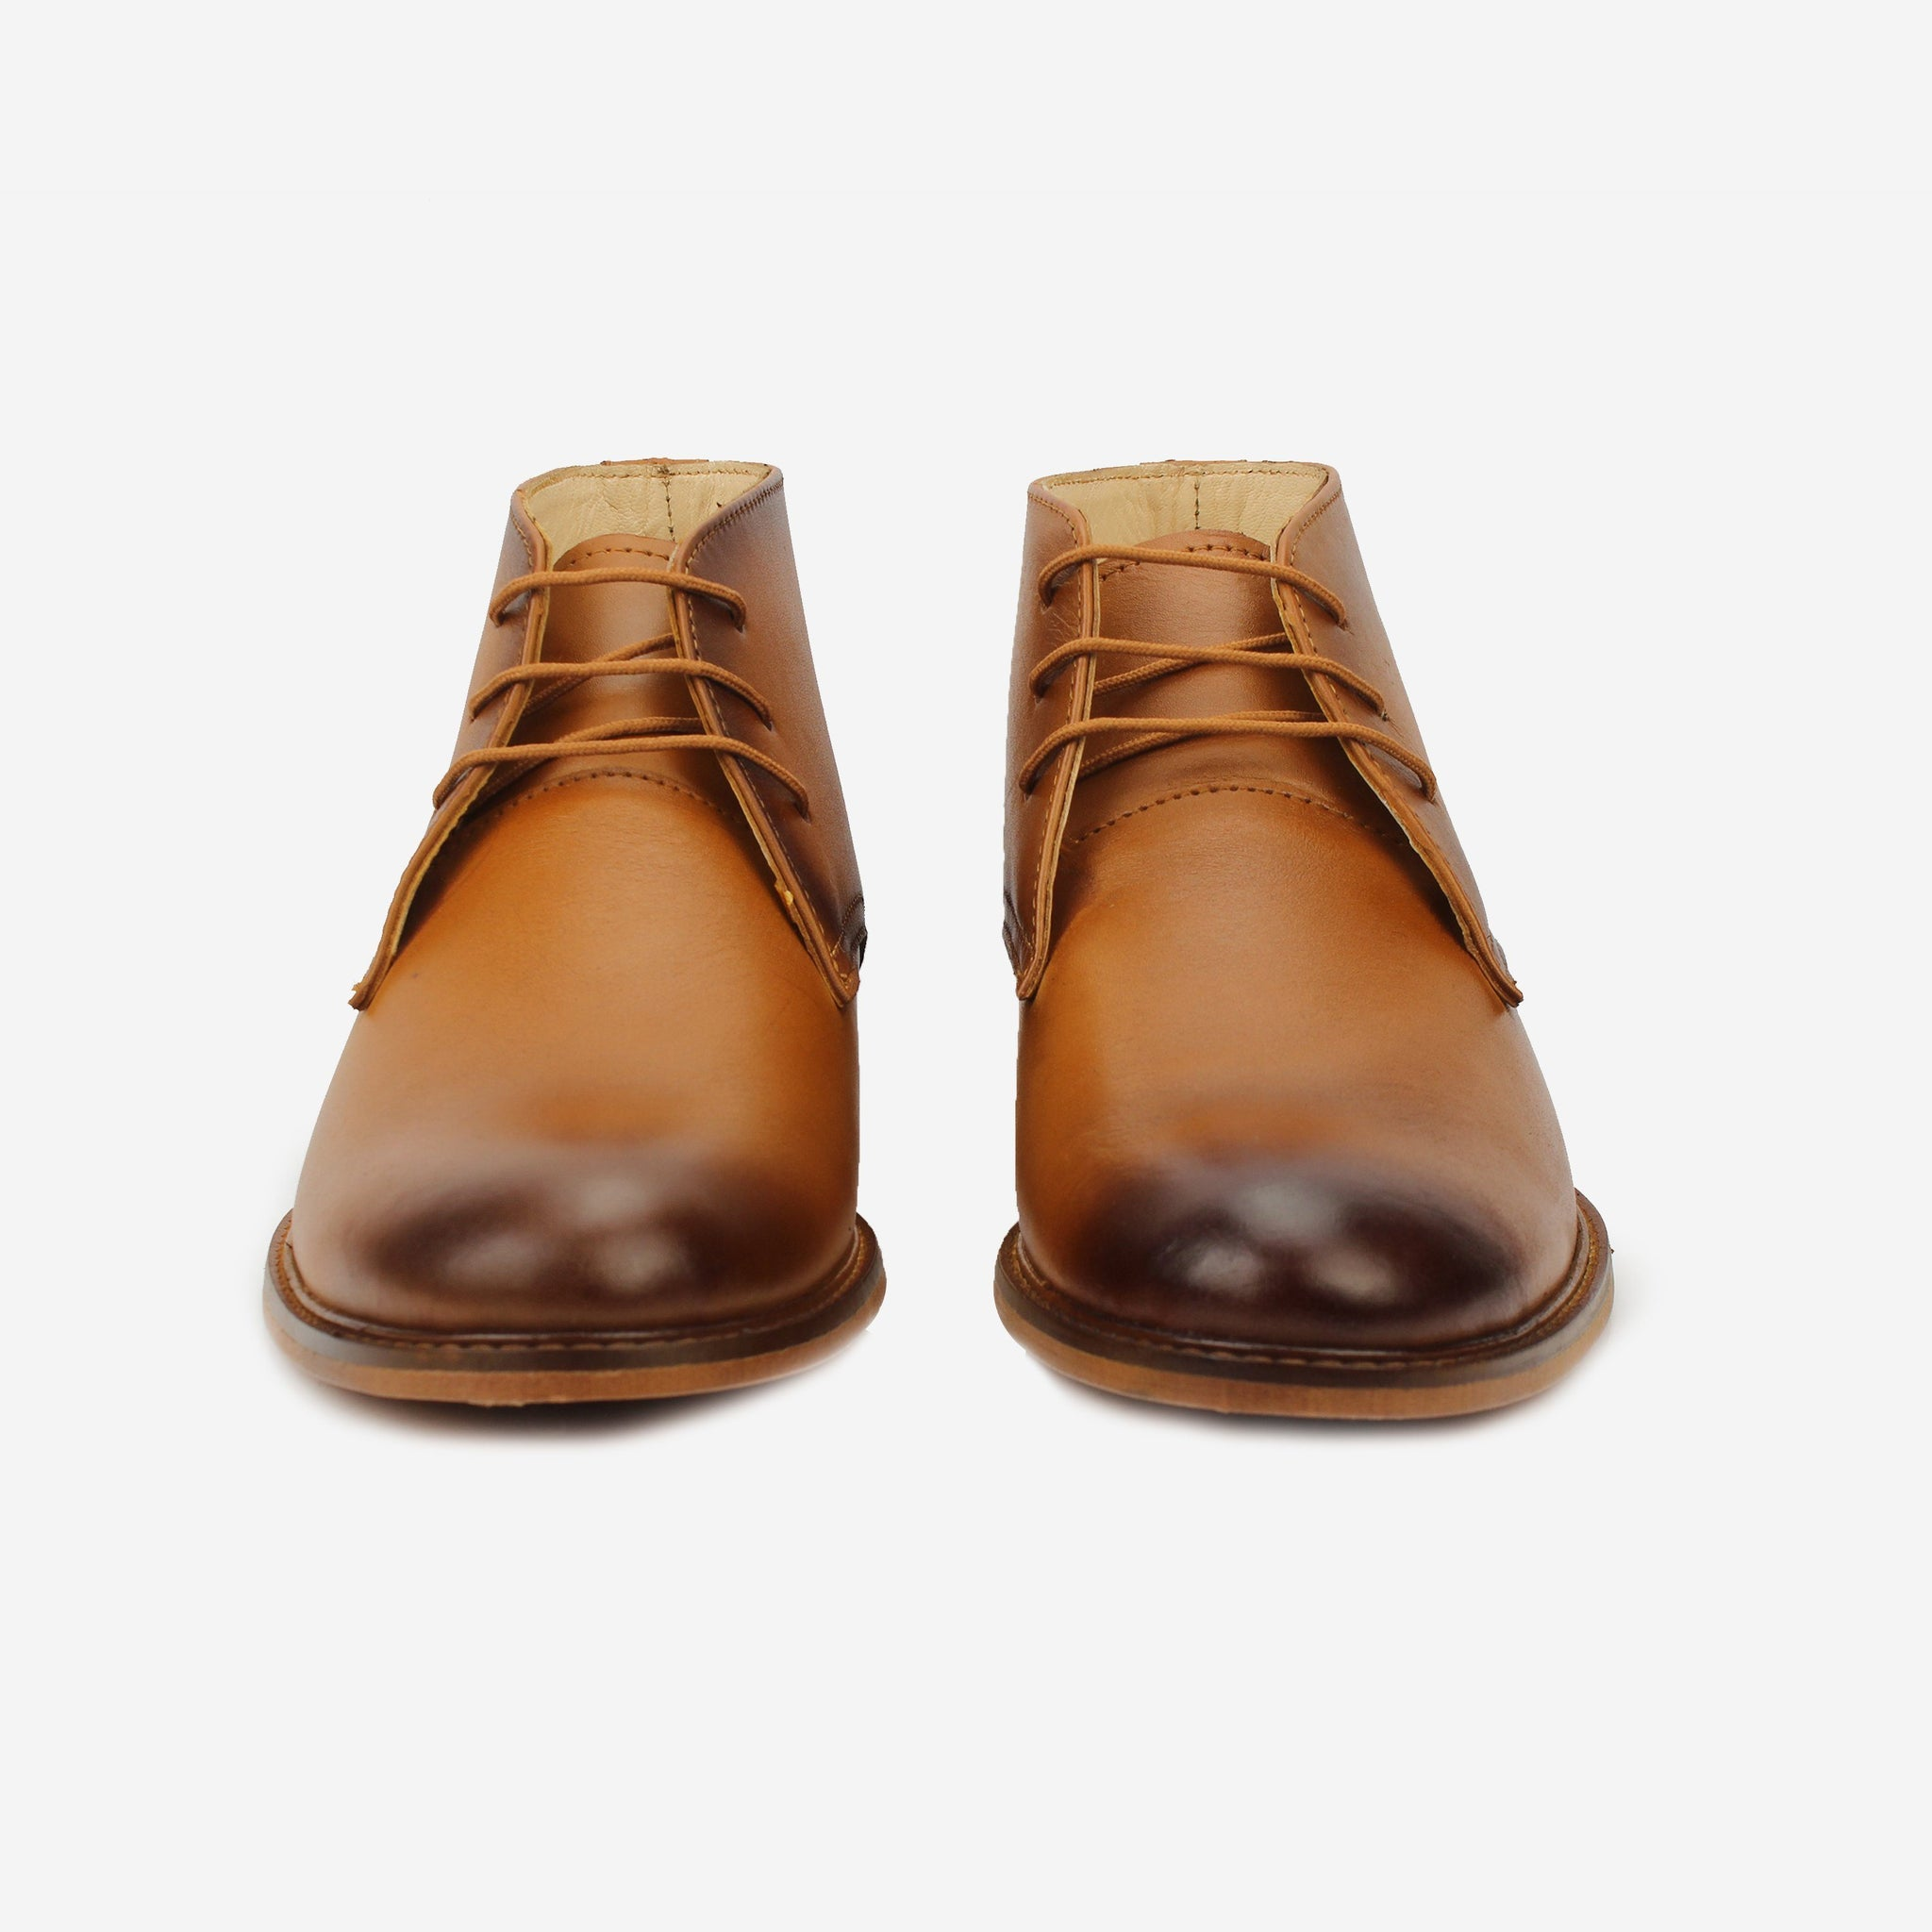 Apollo Boot Tan Thebootsco